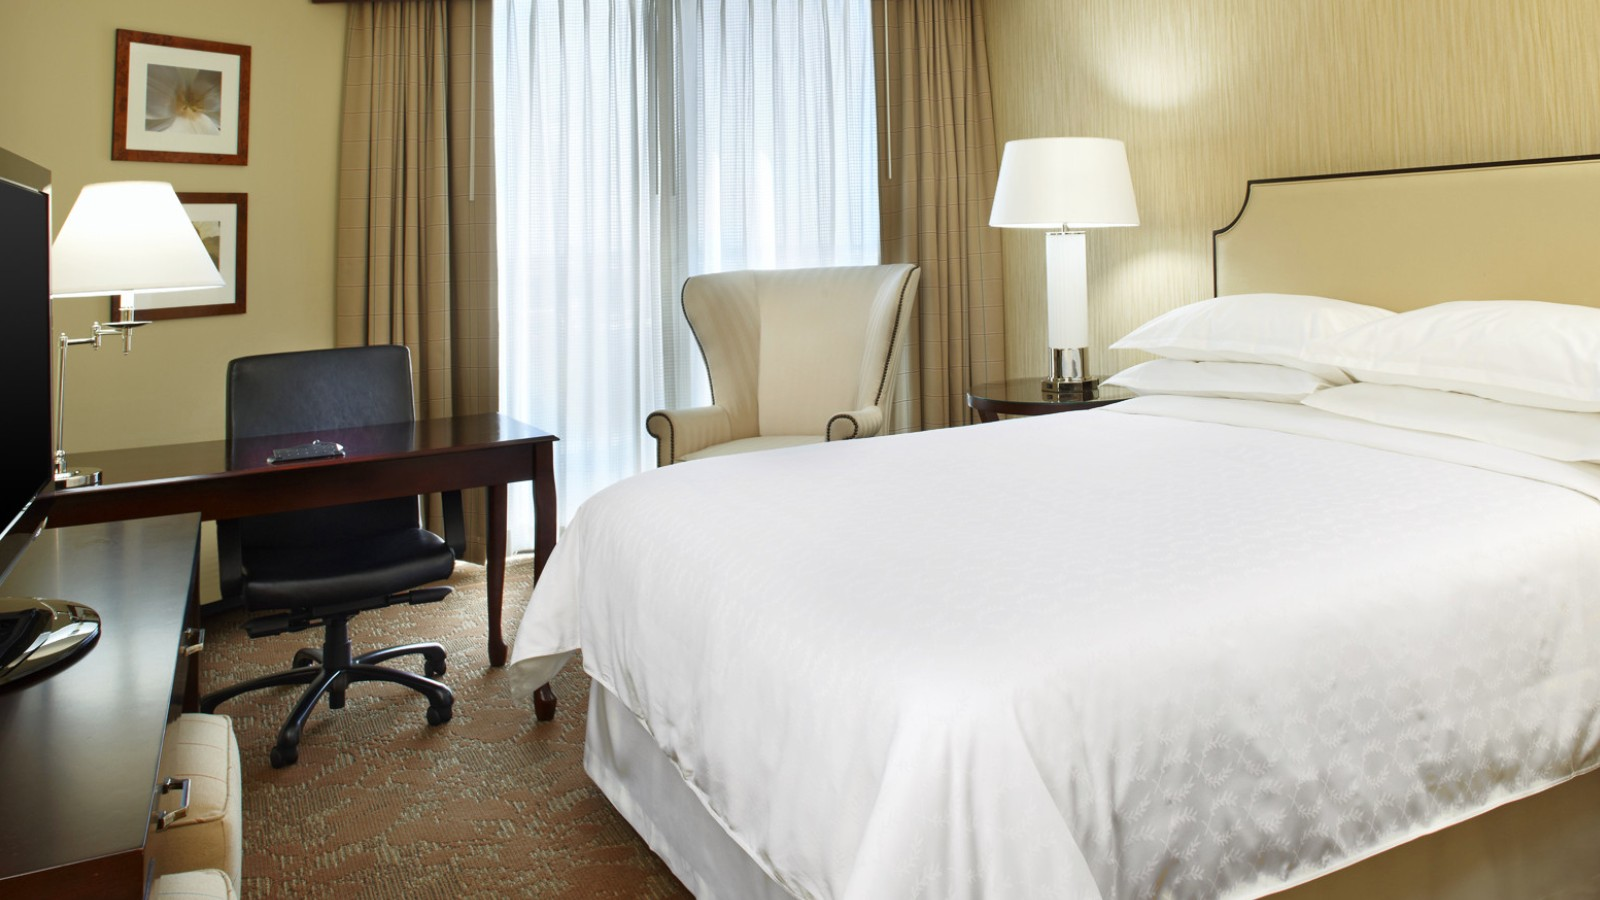 https://www.hotelsbyday.com/_data/default-hotel_image/0/2654/sheratonhoustonbrookhollowhotelqueenguestroom.jpg